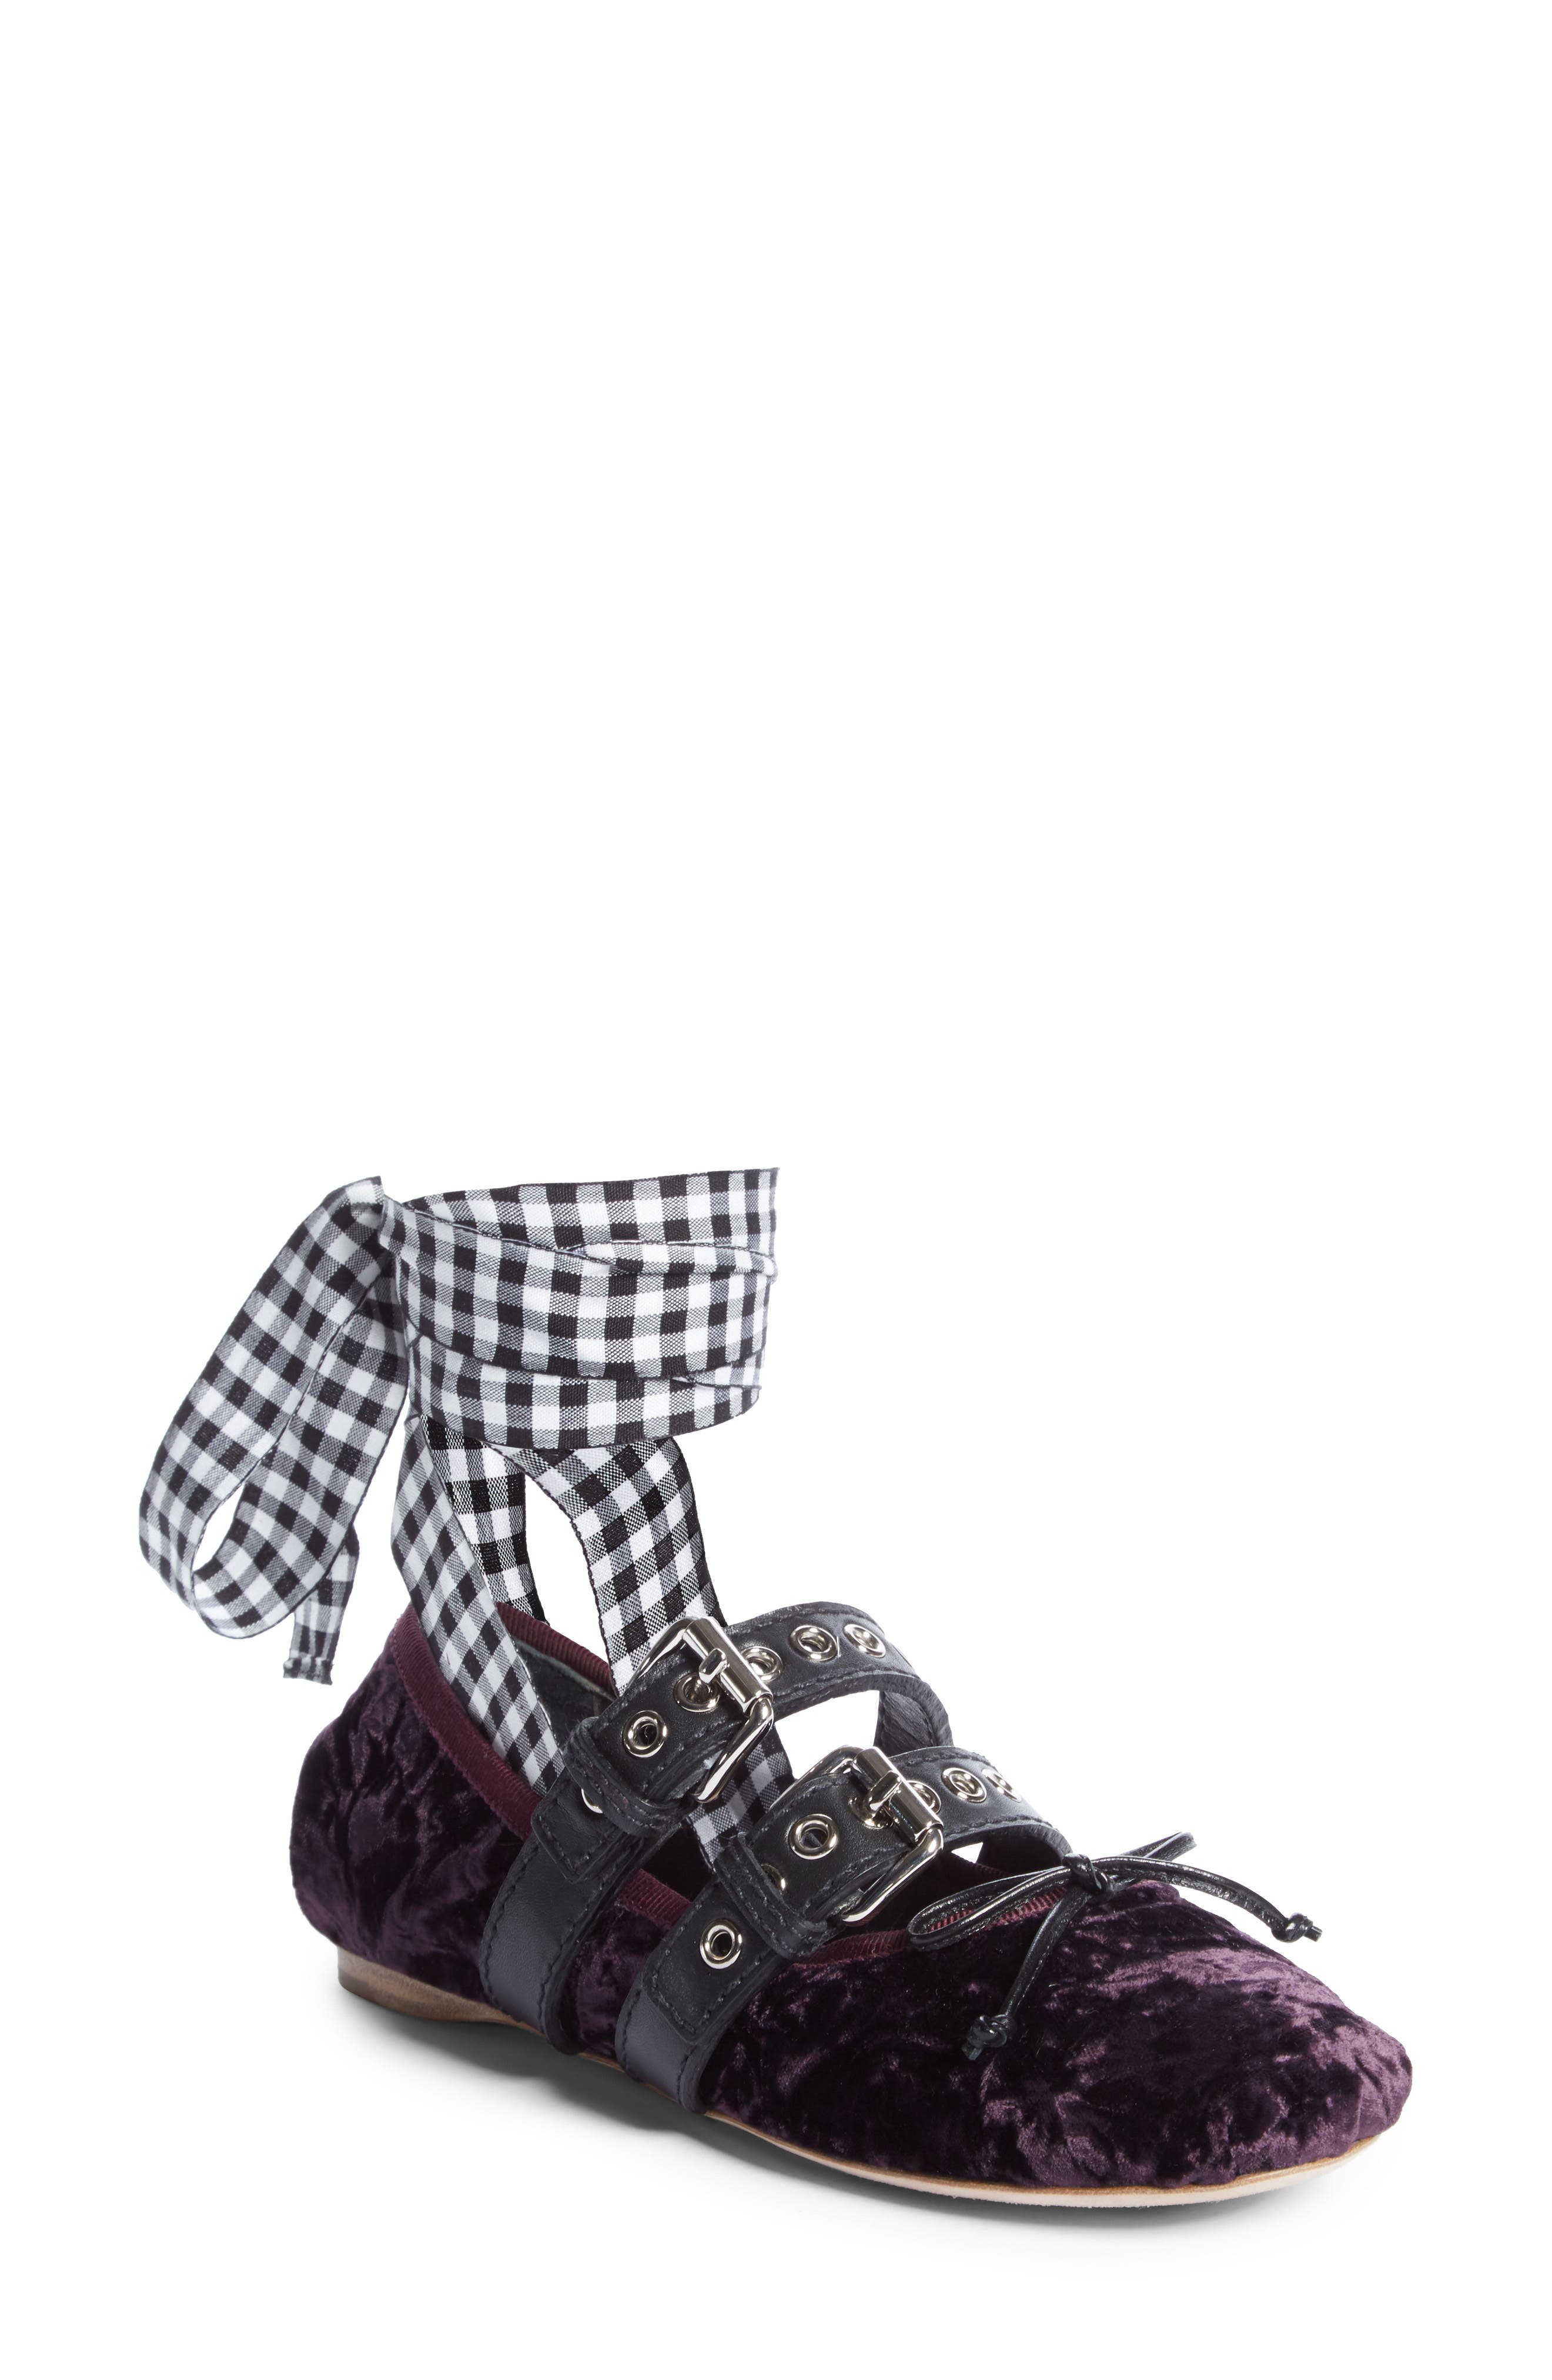 Miu Miu Lace-Up Ballerina Flat (Women)